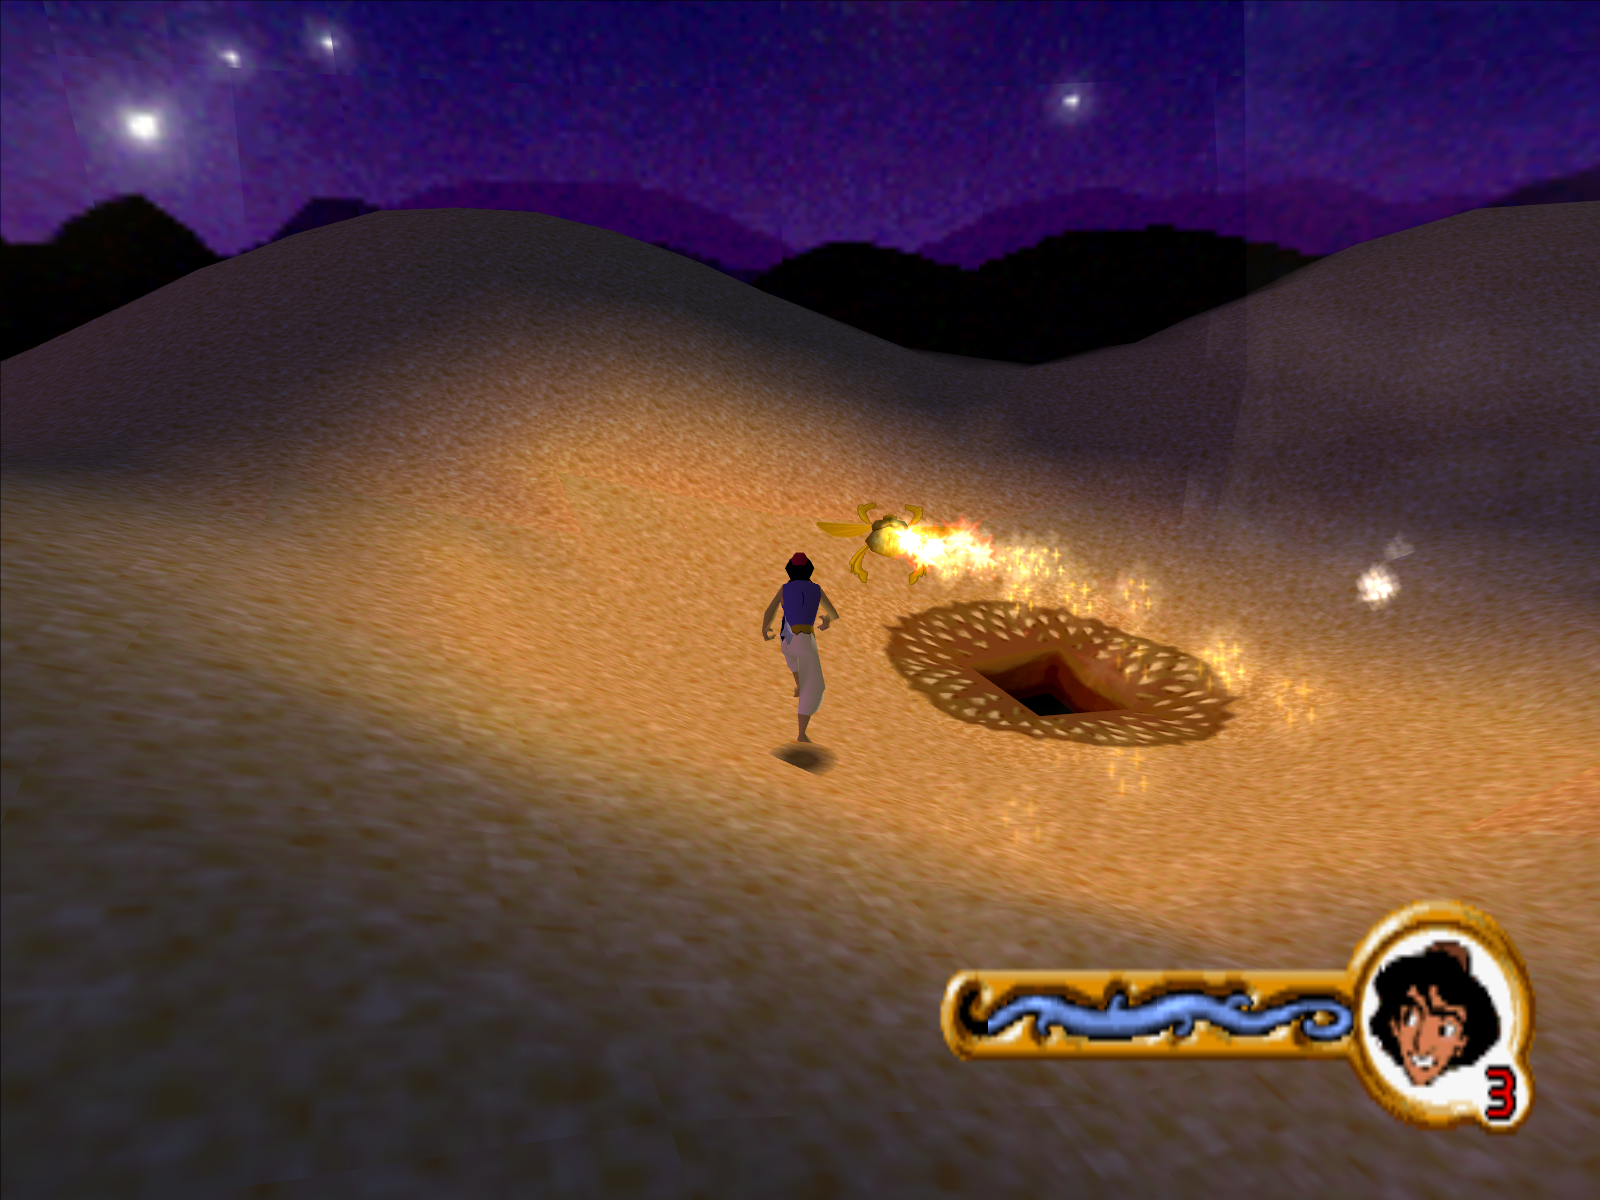 Disney's Aladdin in Nasira's Revenge Windows Follow the scarab to the Cave of Wonders.